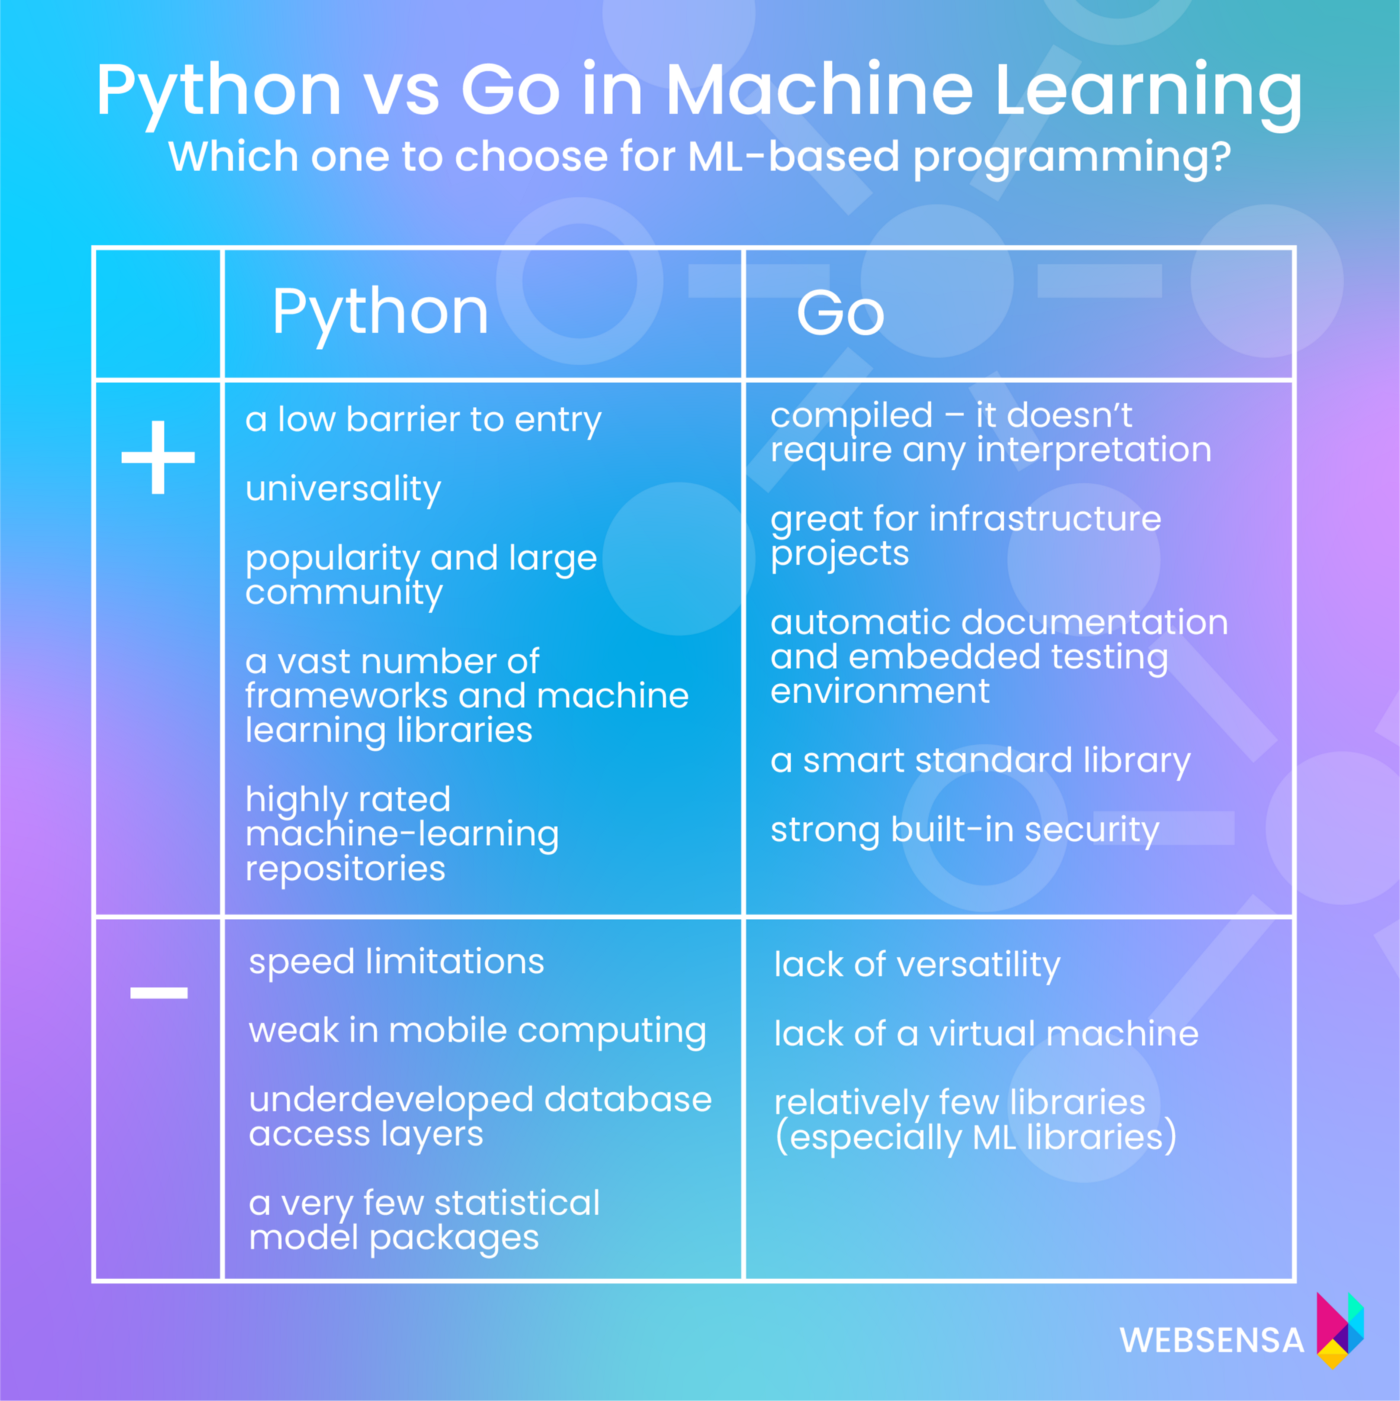 Python vs Go as programming languages used for machine learning—pros & cons of using them for ML-based programming.